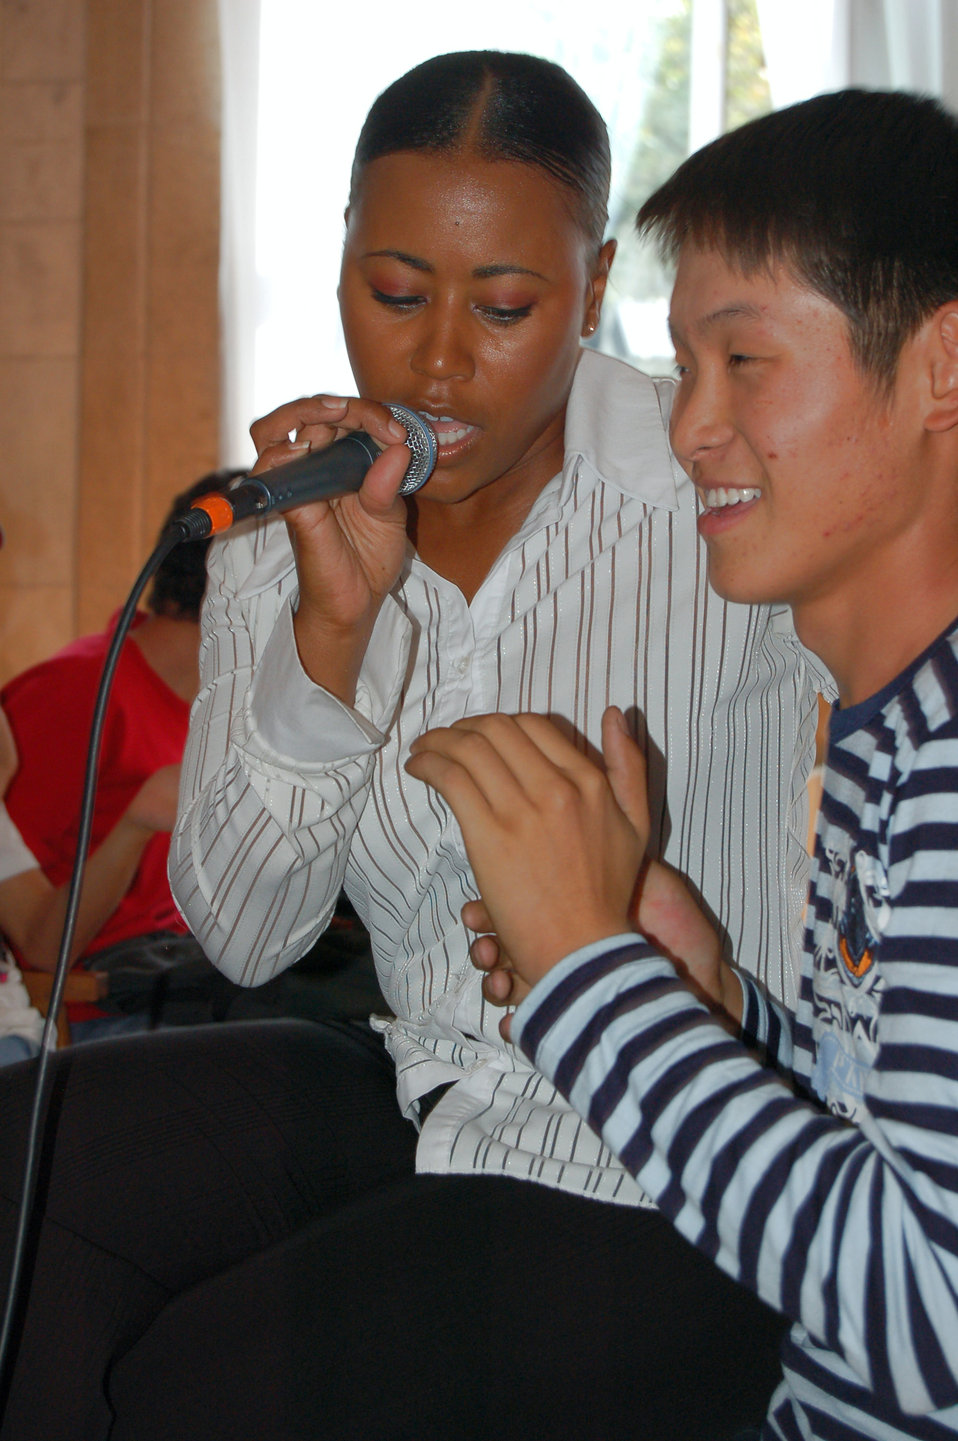 Band members, Kyrgyz citizens share culture through music